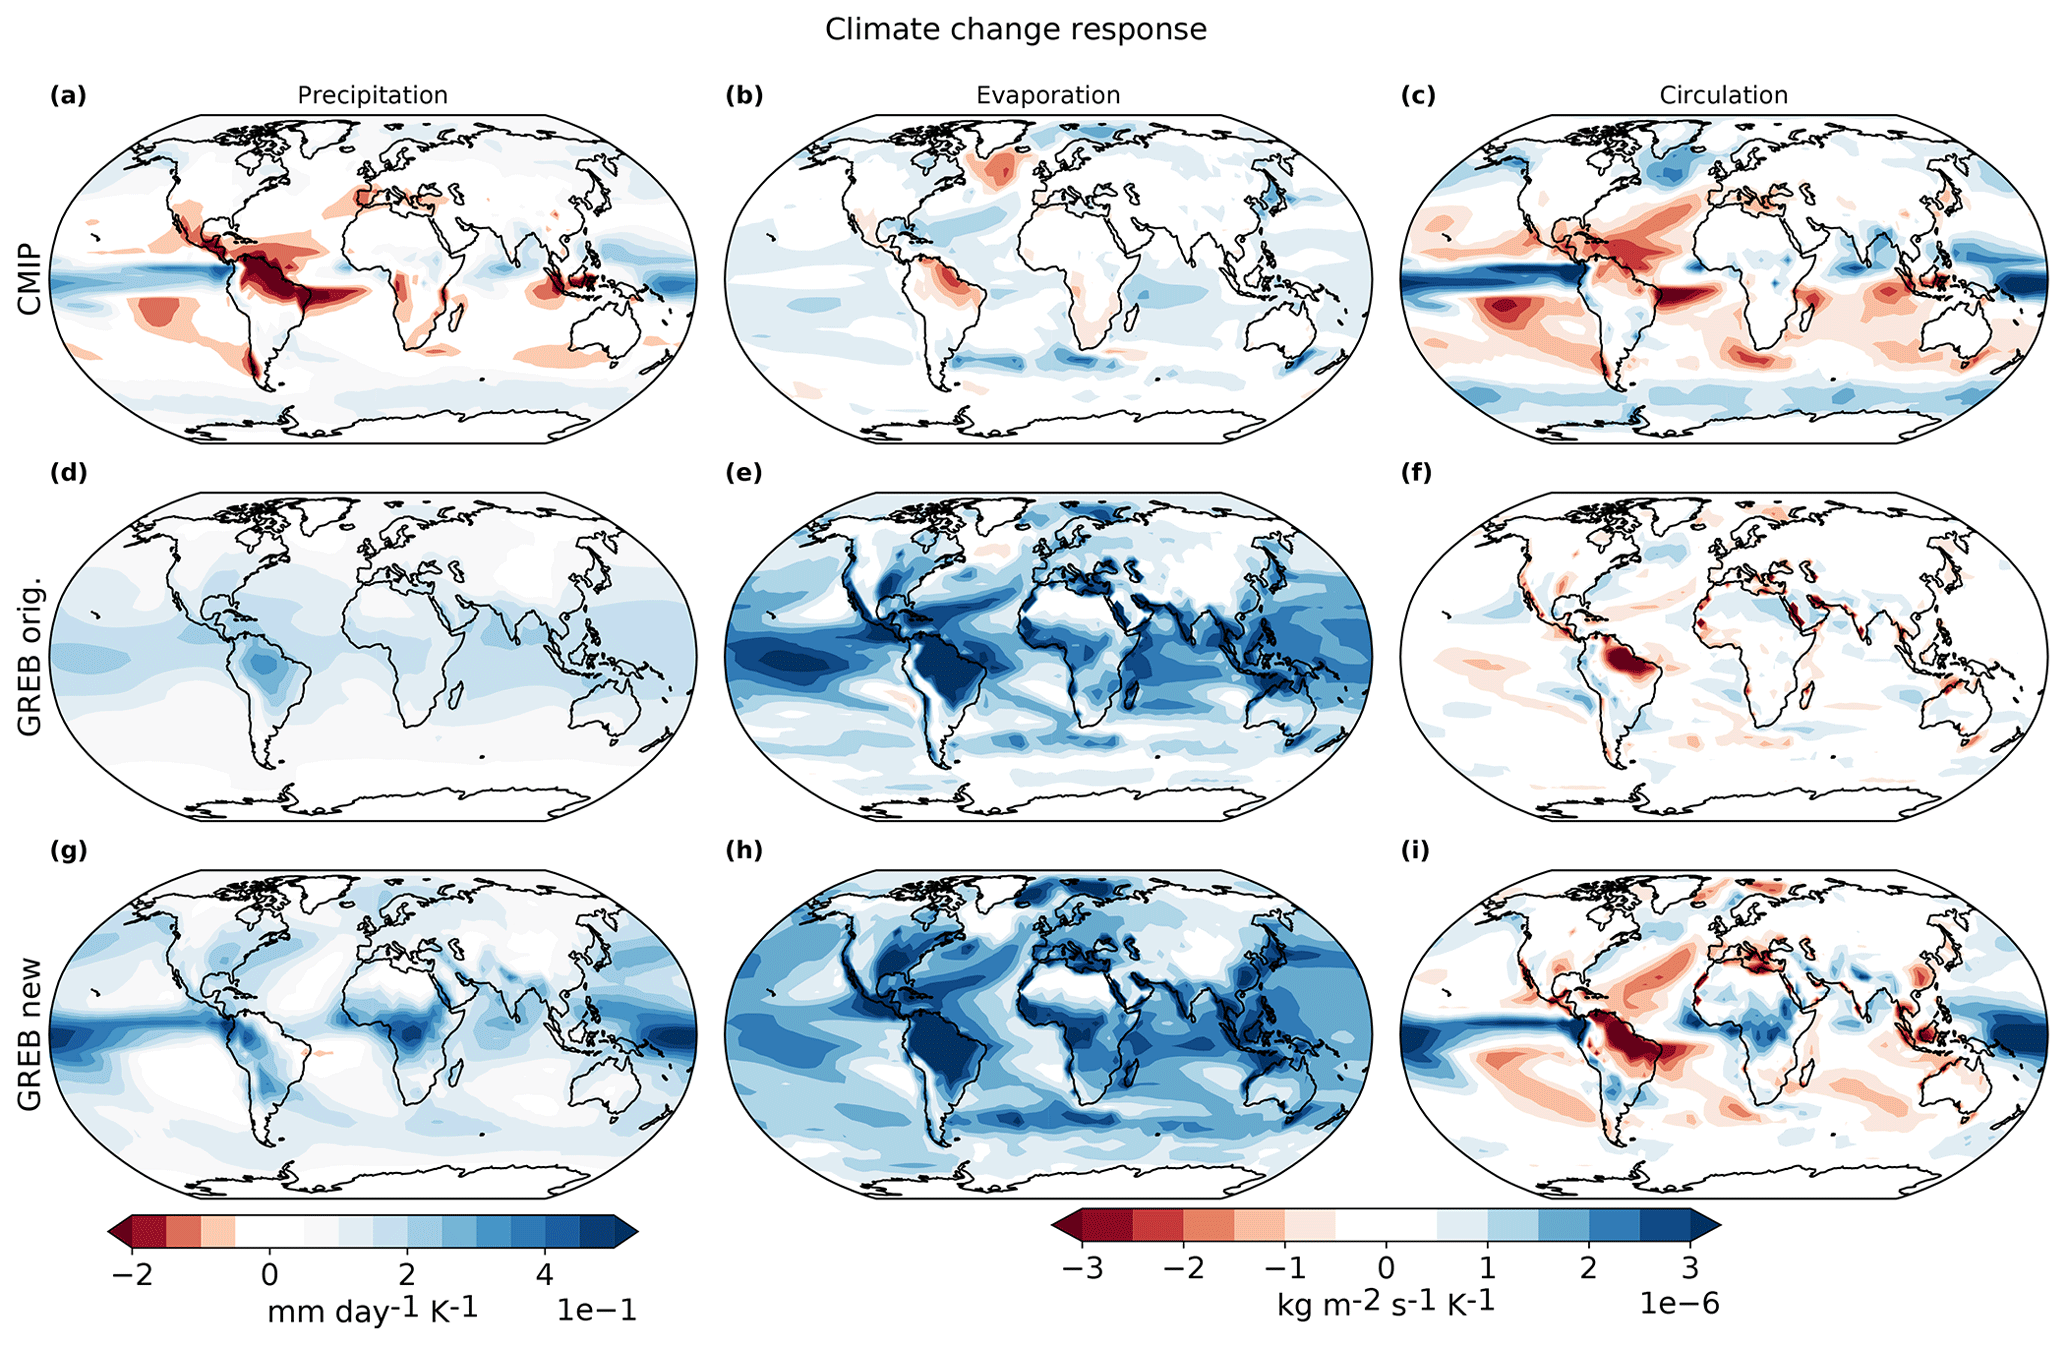 GMD - A hydrological cycle model for the Globally Resolved